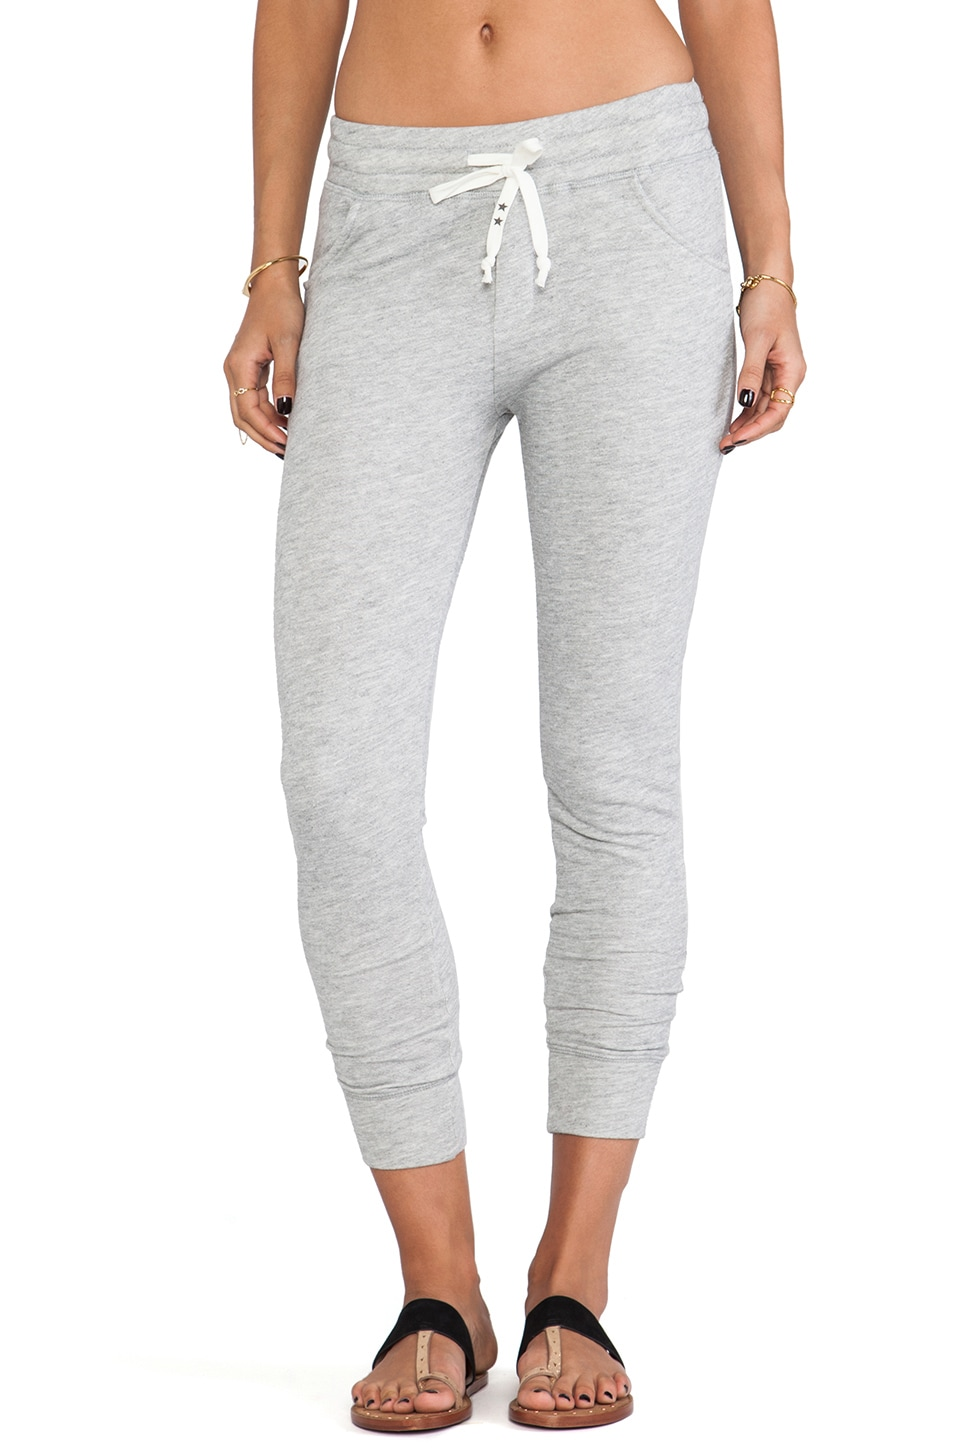 291 Birds Relaxed Slouchy Sweatpant in Heather Grey